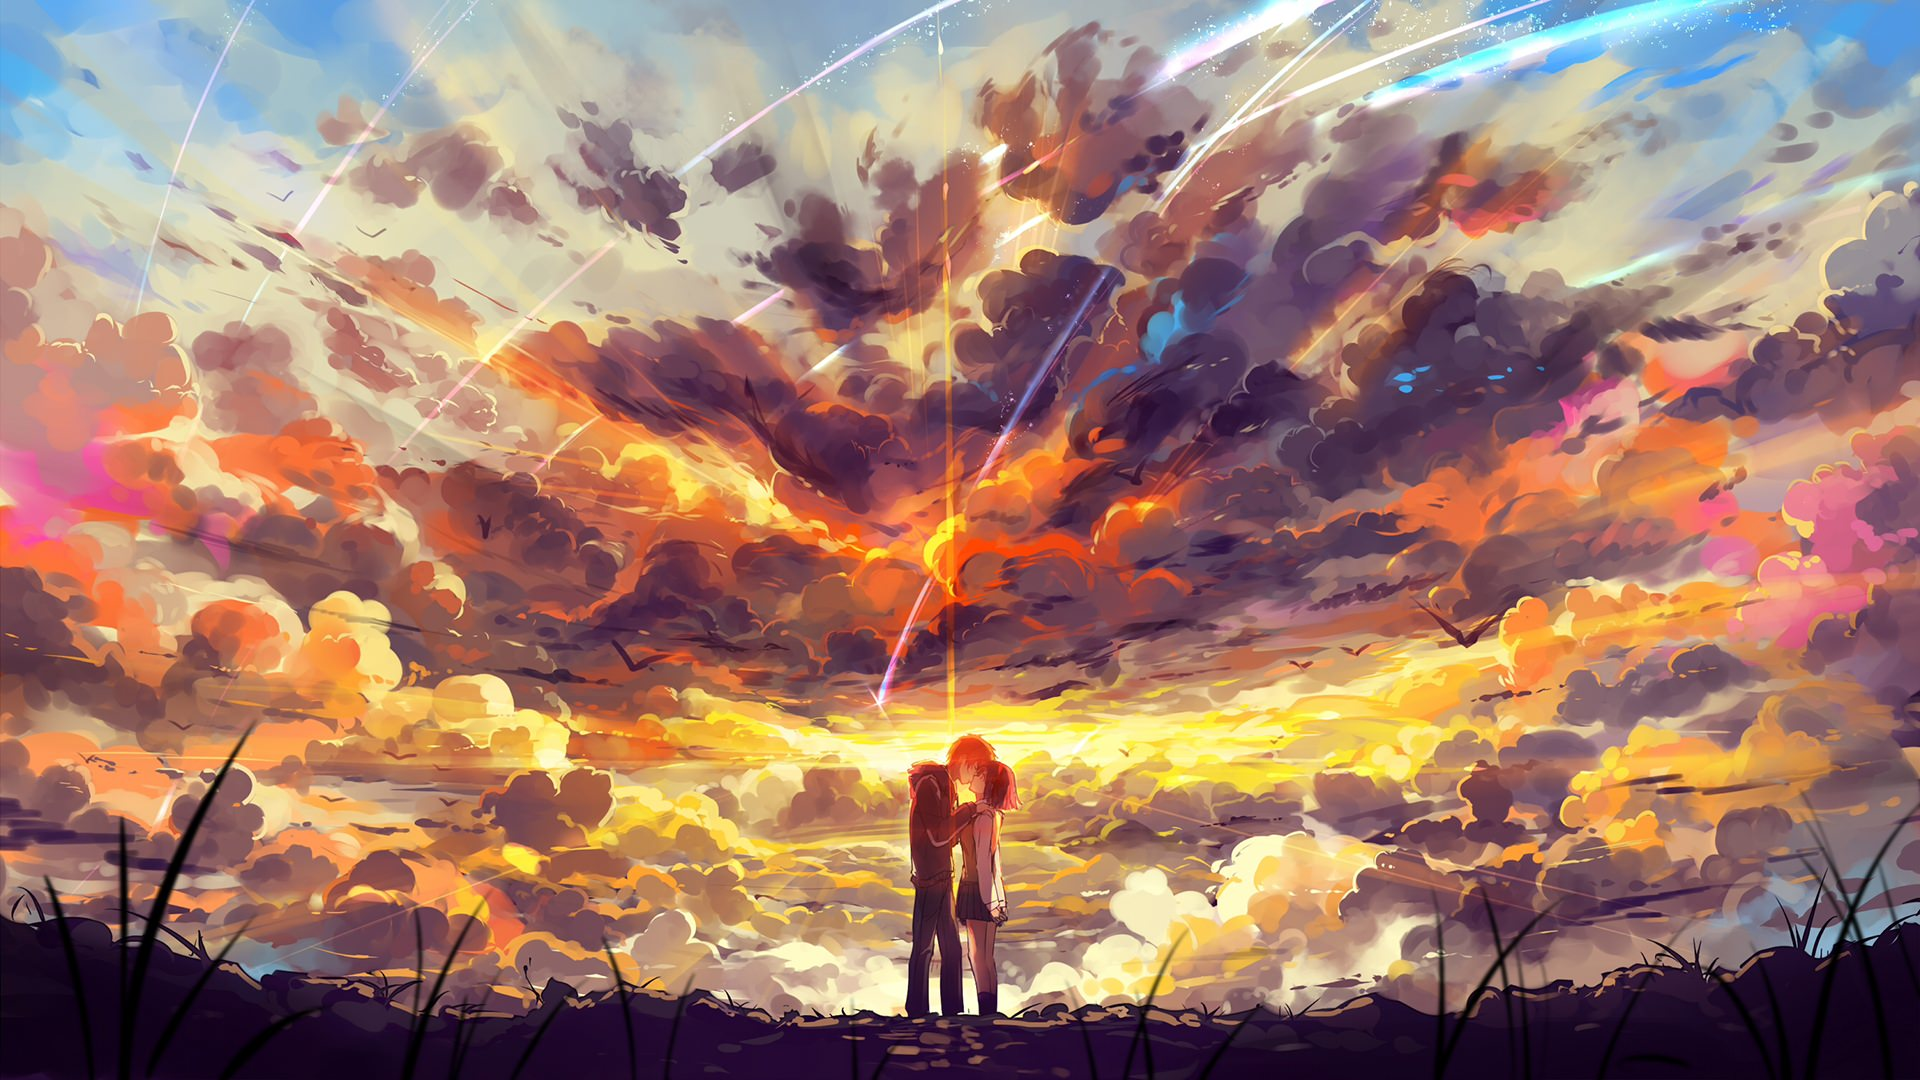 Your Name Anime Wallpapers Top Free Your Name Anime Backgrounds